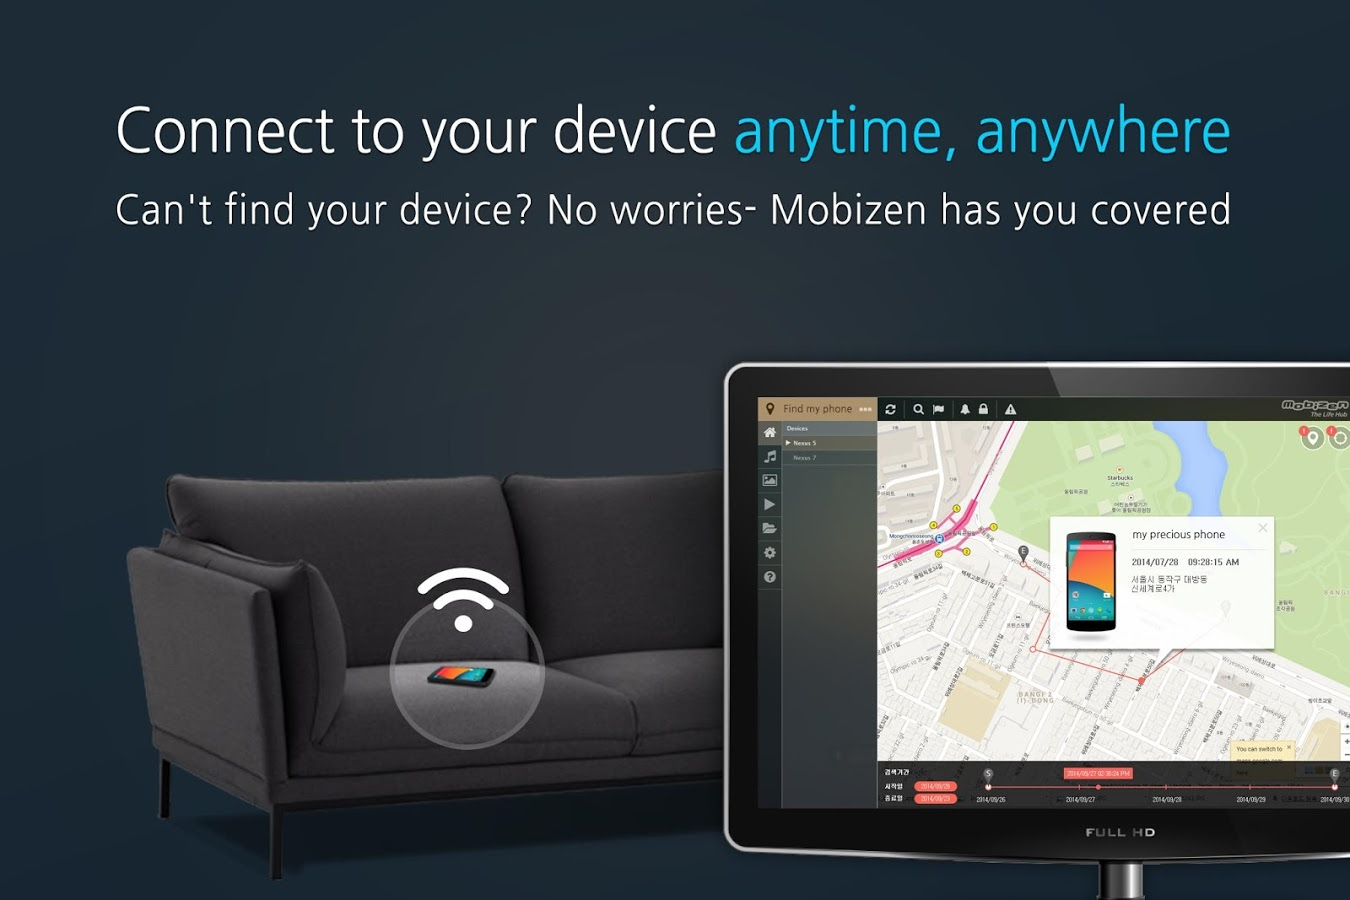 Mobizen-your android, anywhere for lenovo yoga tablet 8 2018.